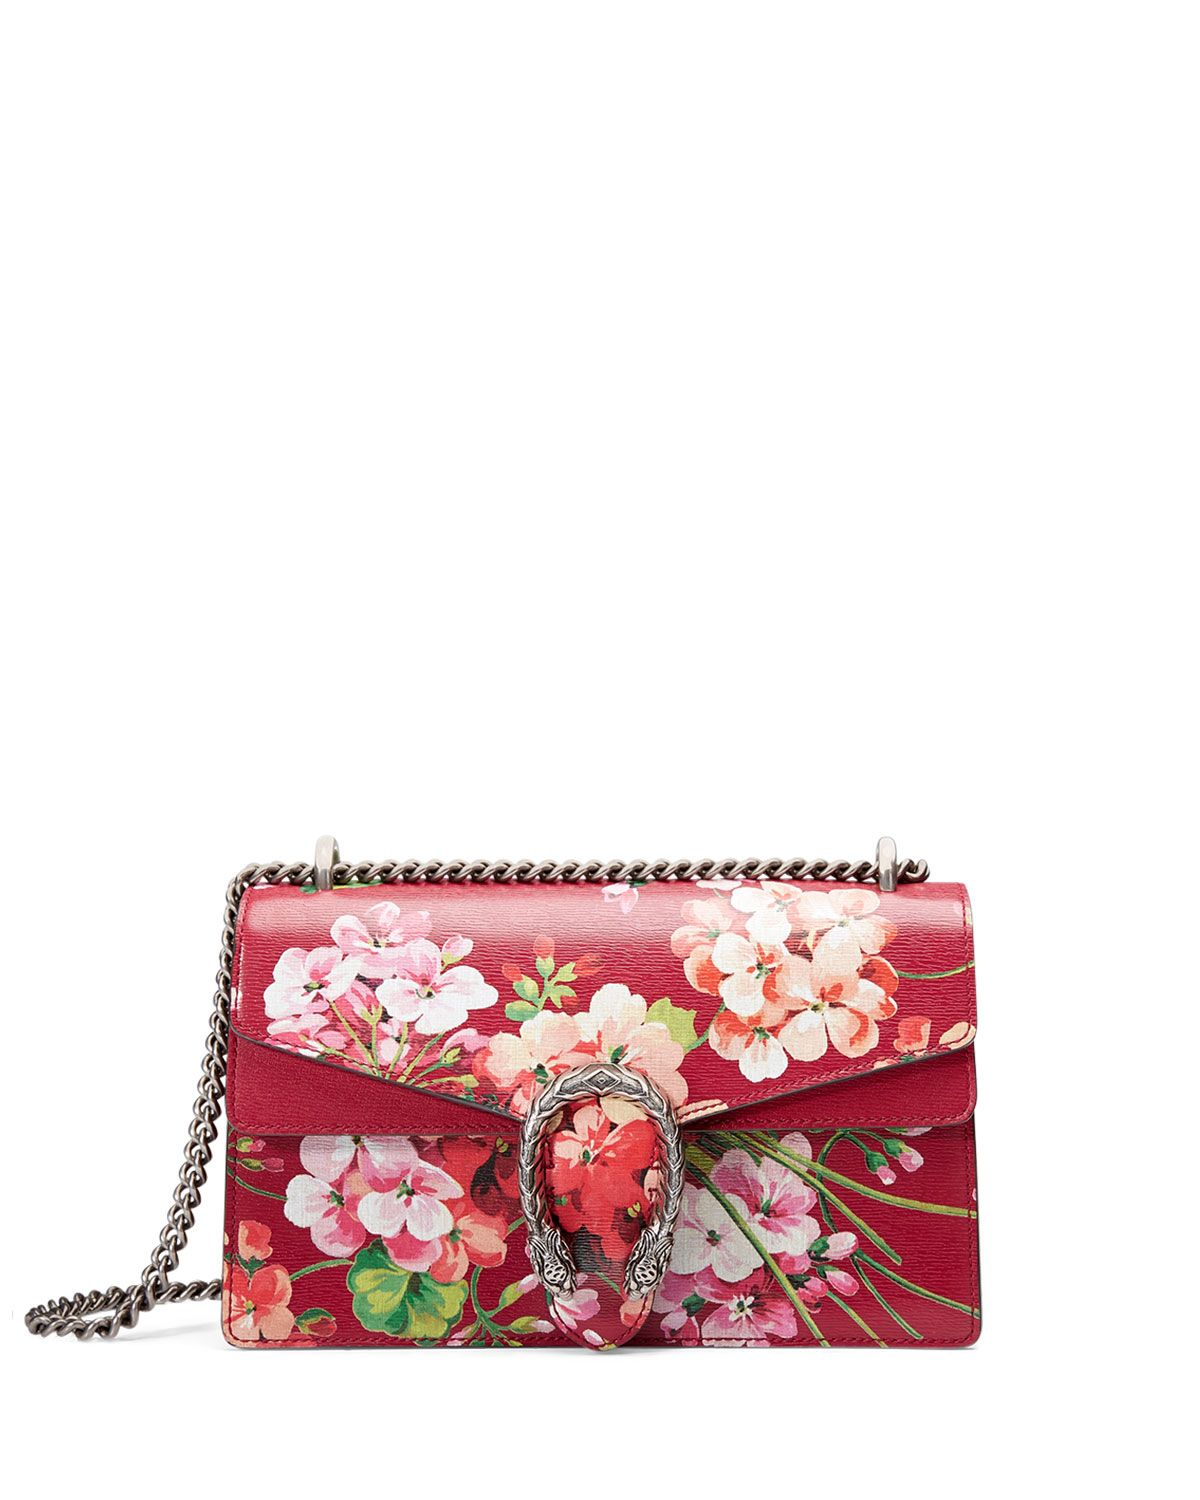 846e8995f51f Dionysus Blooms Small Shoulder Bag, Red, Size: S, Red With Blooms - Gucci